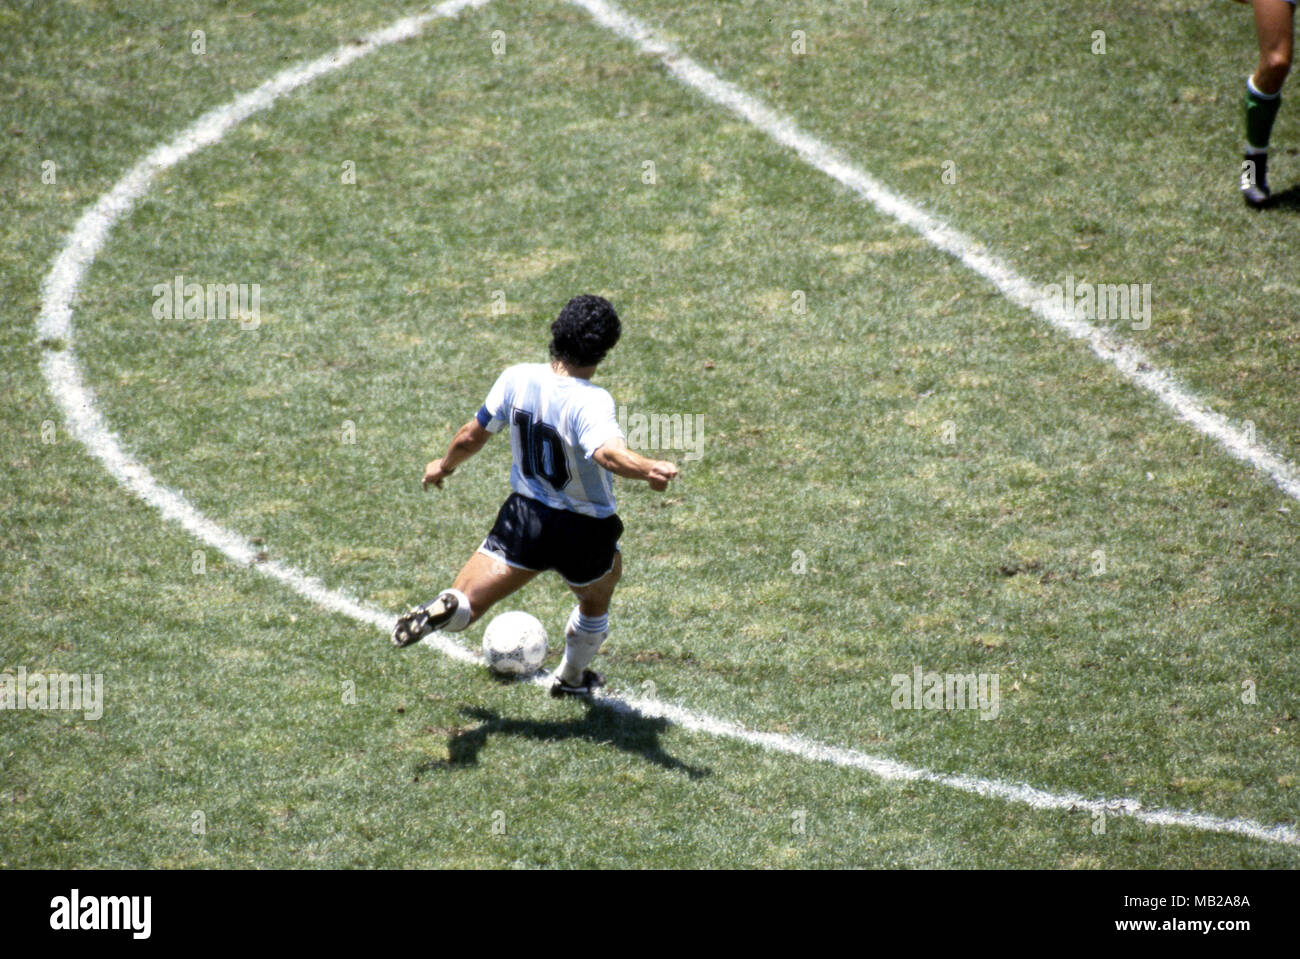 FIFA World Cup - Mexico 1986 29.6.1986, Estadio Azteca, Mexico, D.F. Final Argentina v West Germany. Number 10 Diego Maradona (Argentina) with the ball on his left foot. - Stock Image